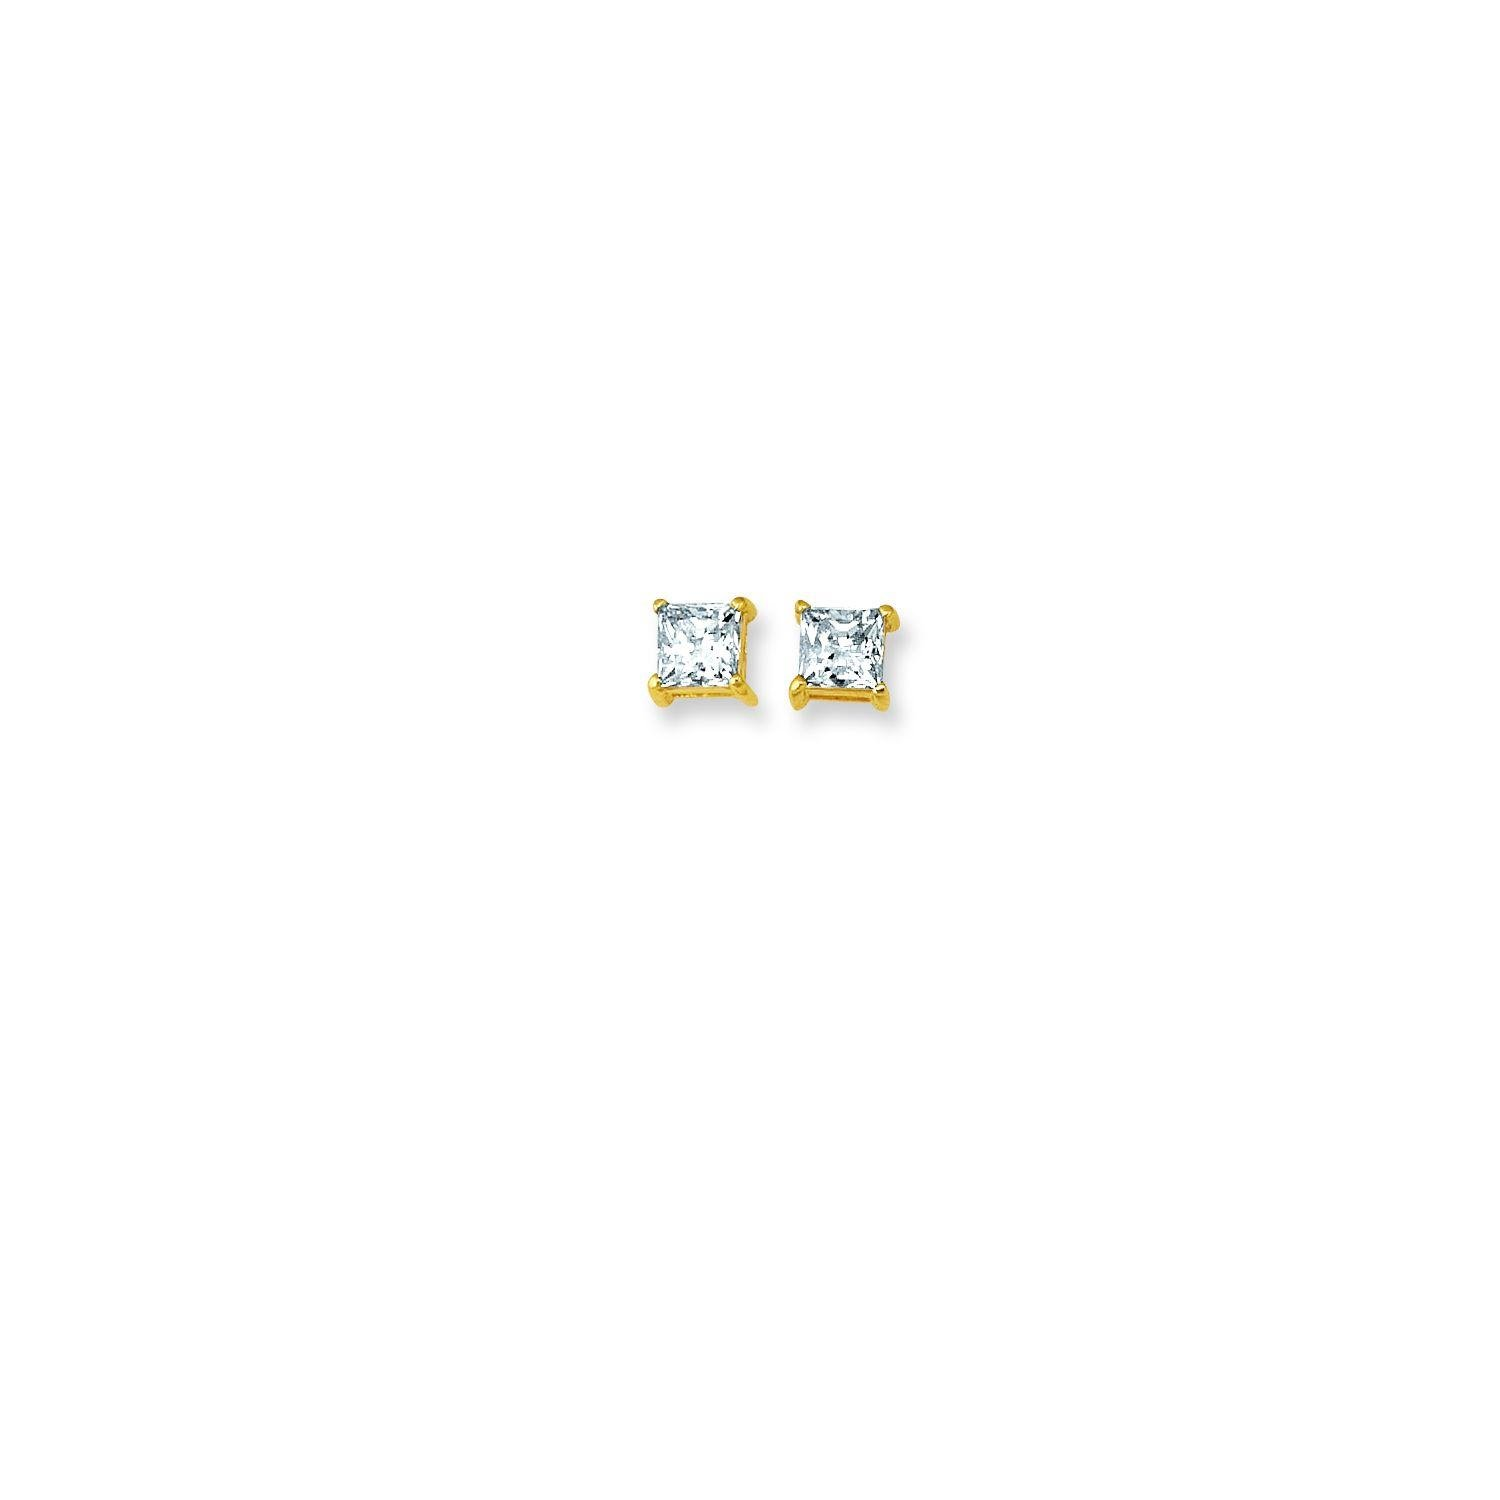 14k Yellow Gold 5mm Polish Finish Cubic-zirconia Square Stud Earring